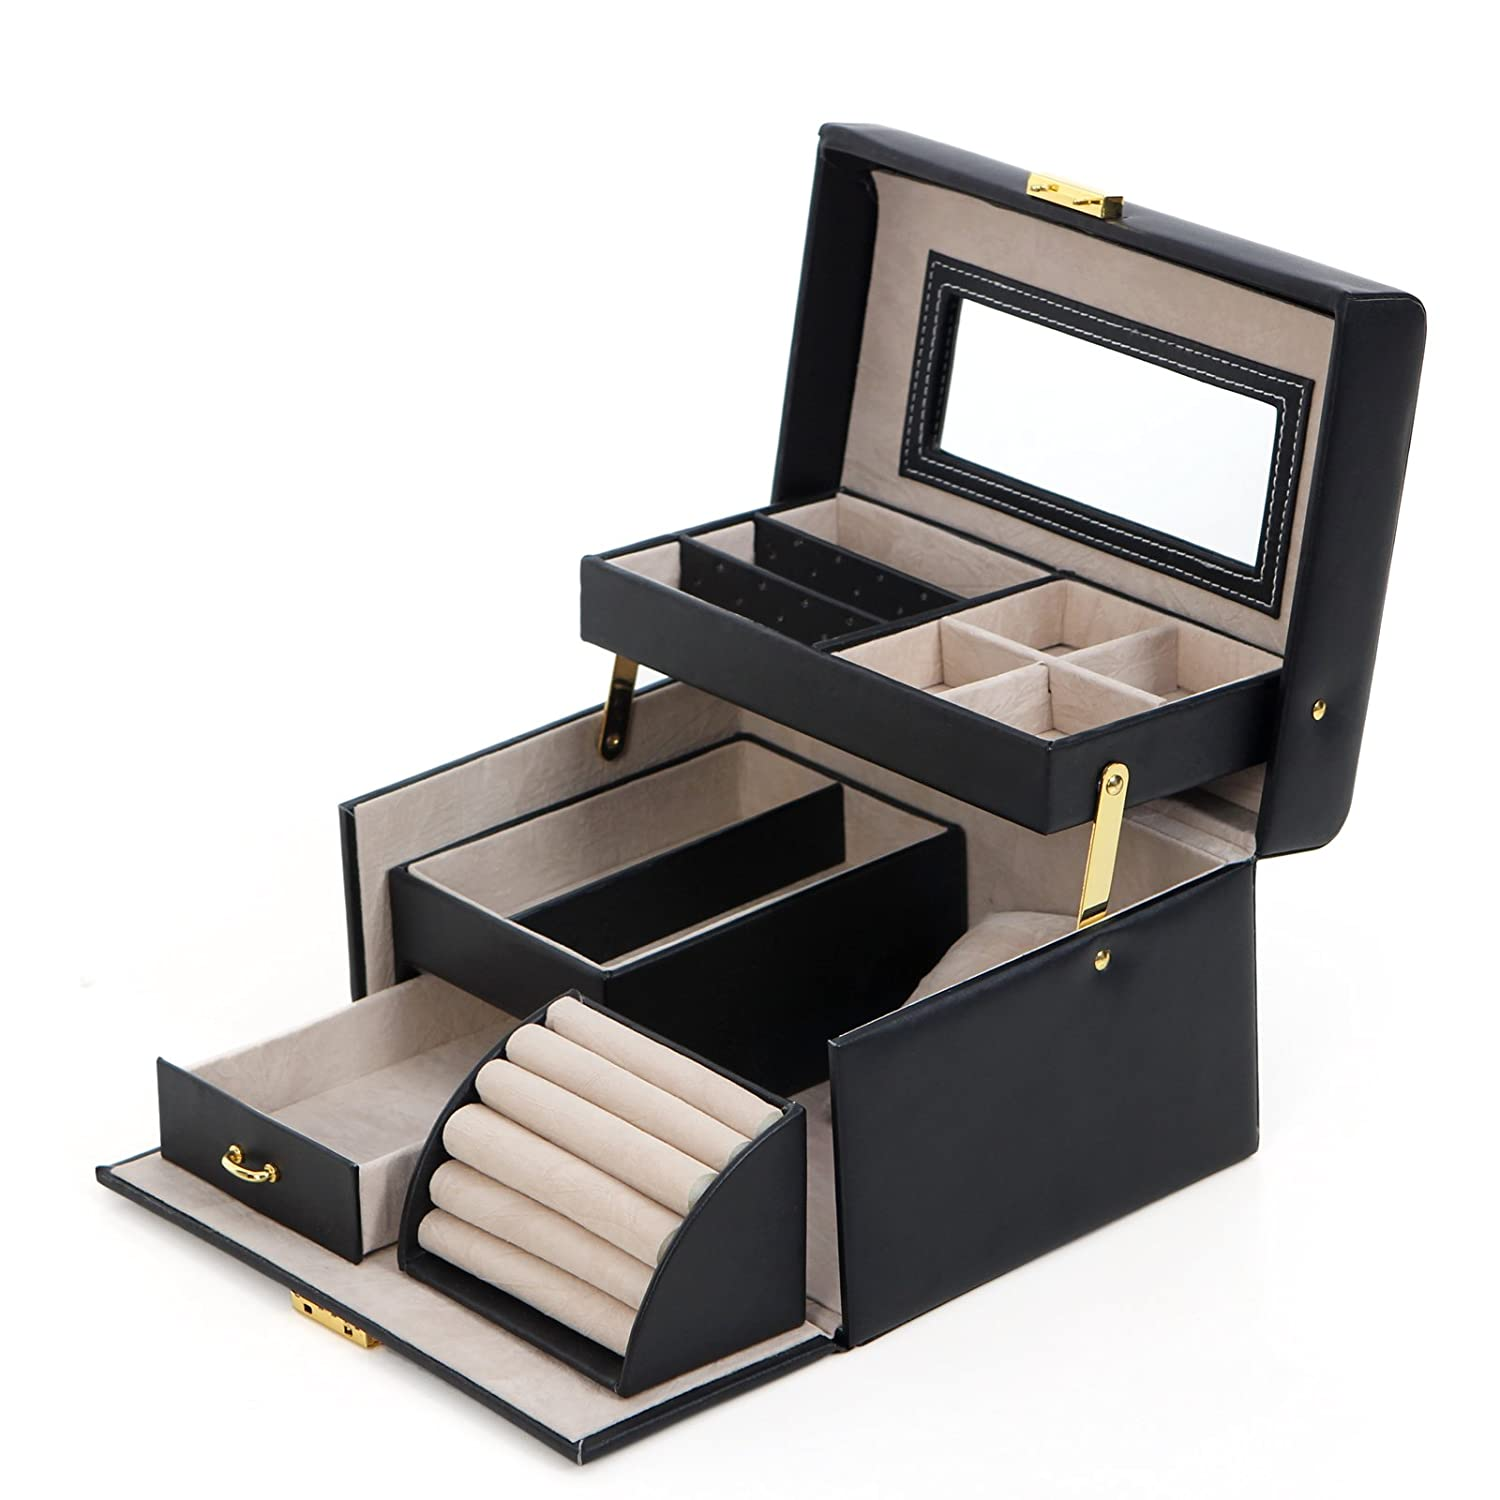 Songmics JBC114 Jewellery Box, Lockable Jewellery Case with Mirror ...